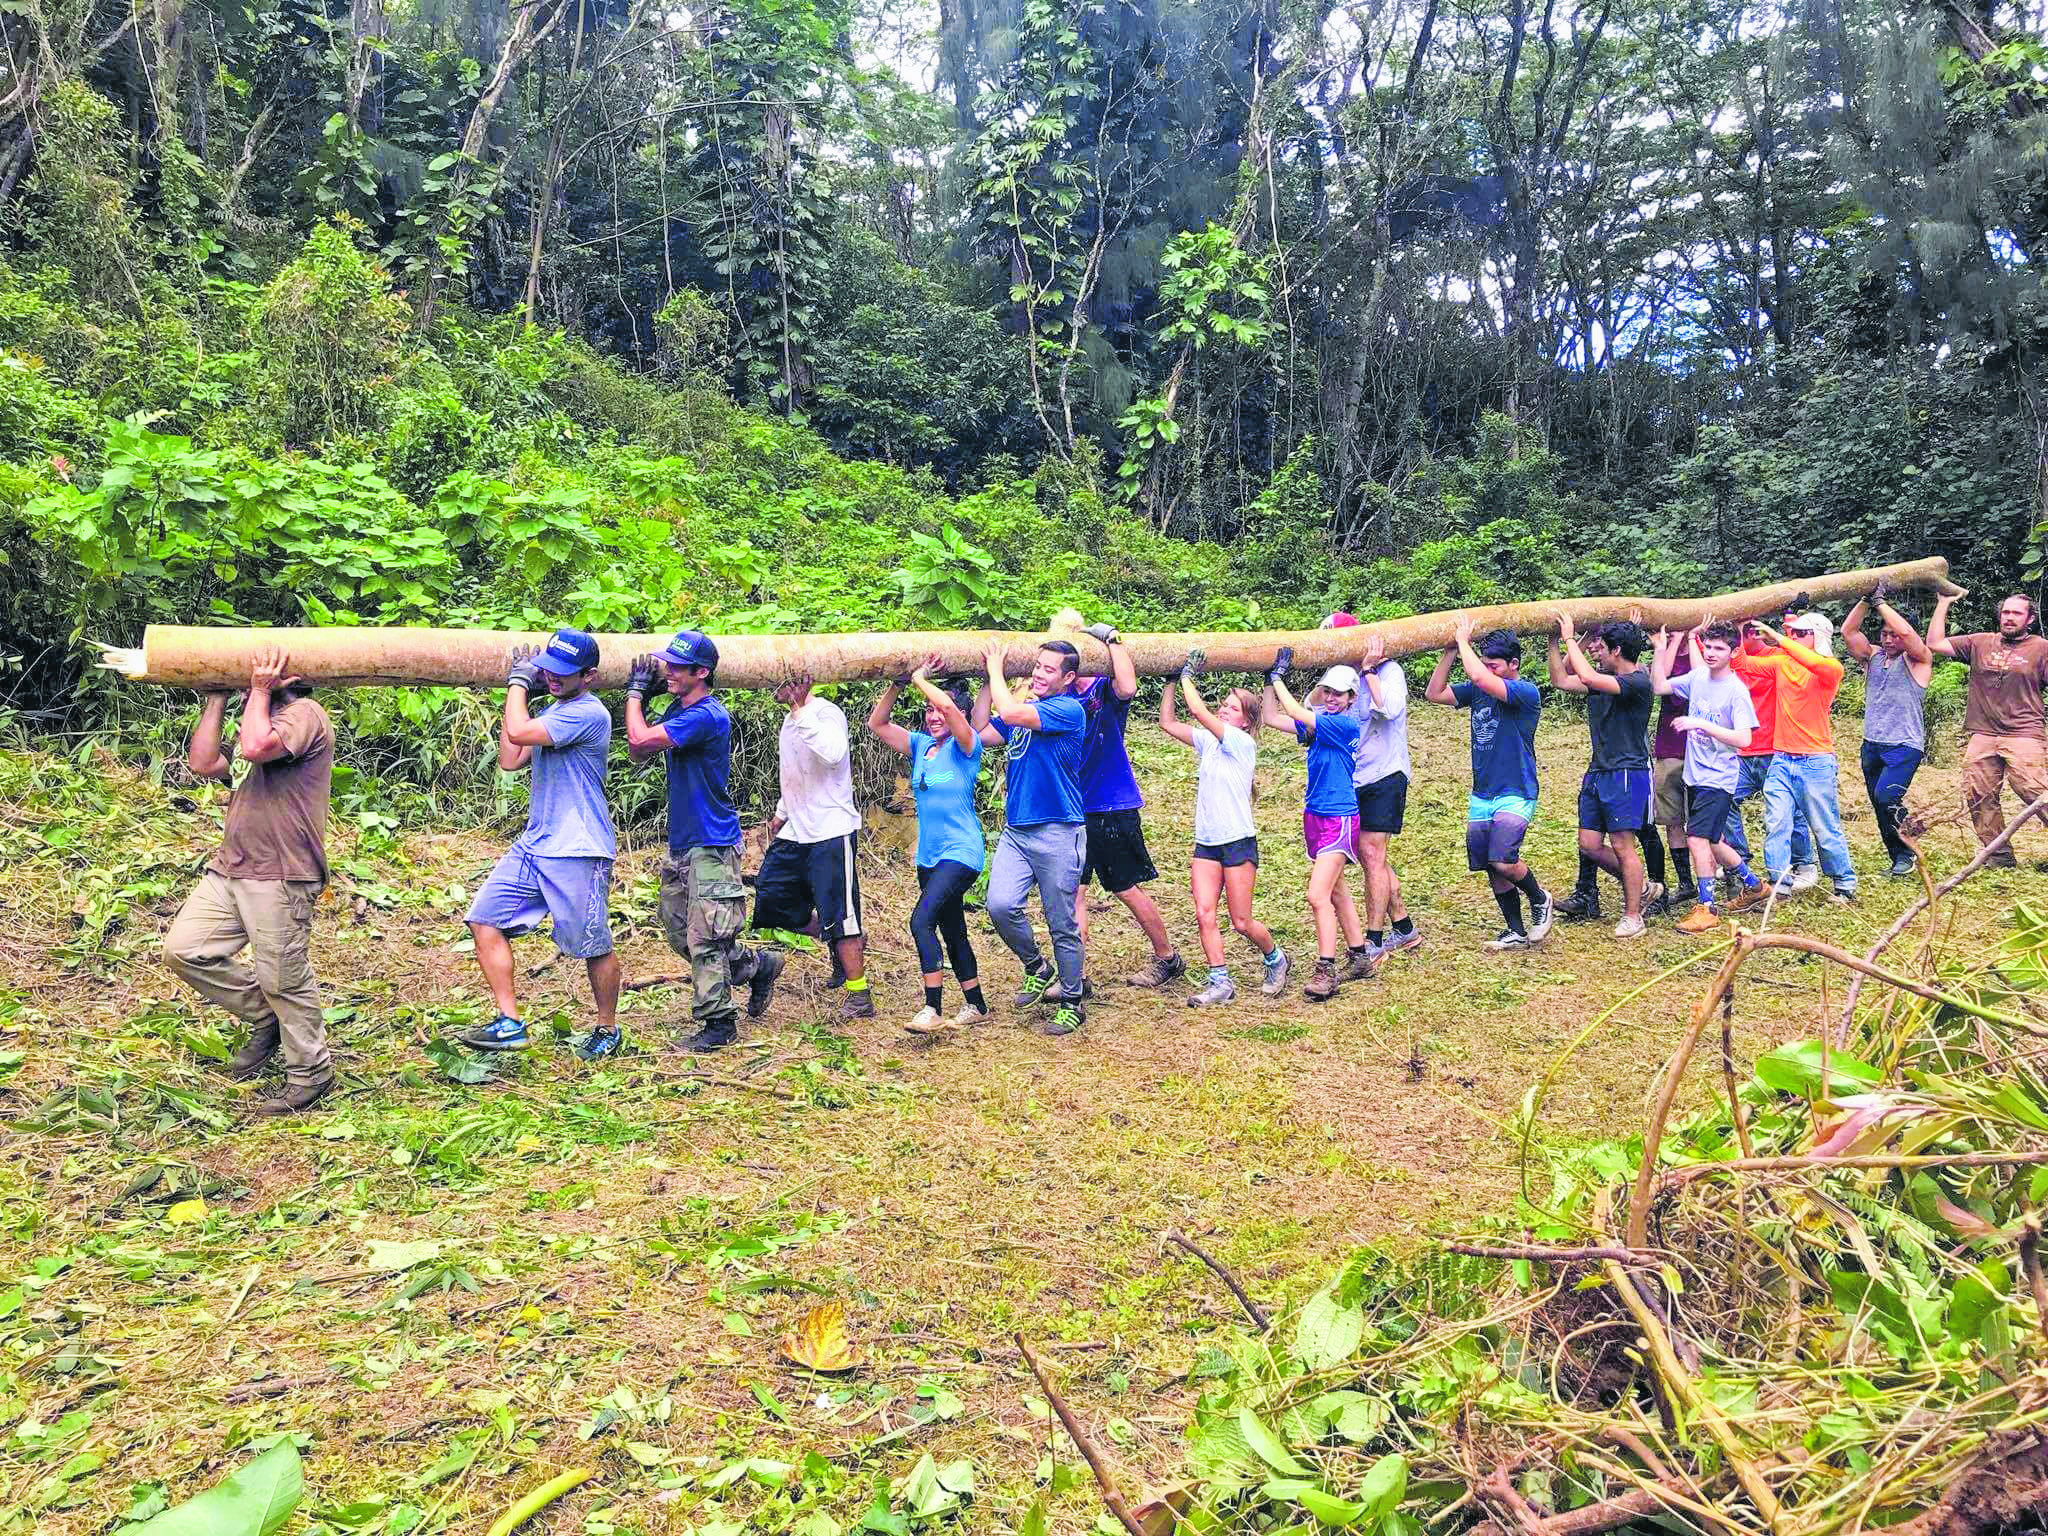 HIHO volunteers work on a group project for Kokua Kalihi Valley, moving a tree log in Kalihi Valley. (Photos courtesy HIHO)